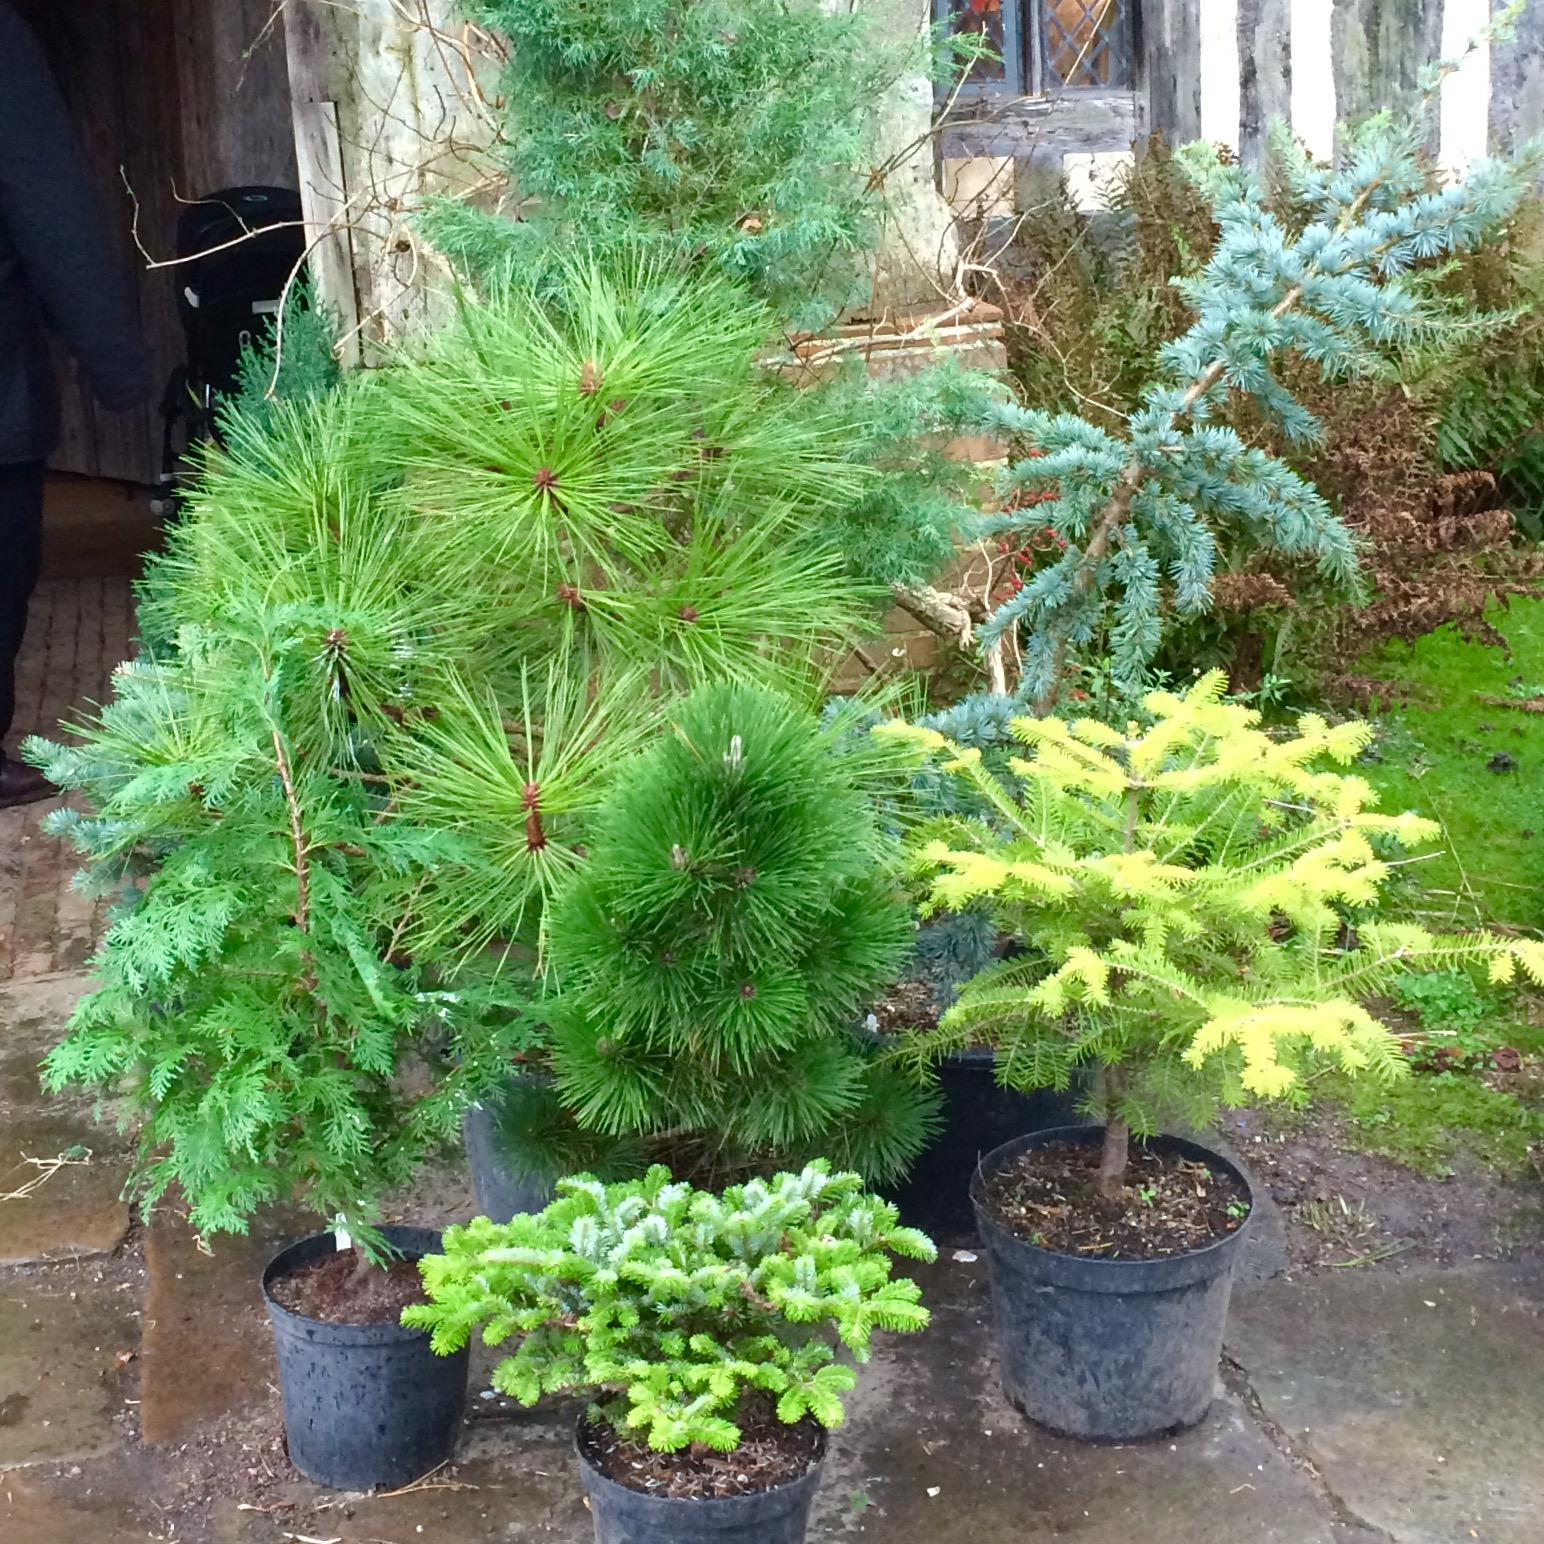 Conifers in pots as garden Christmas decorations